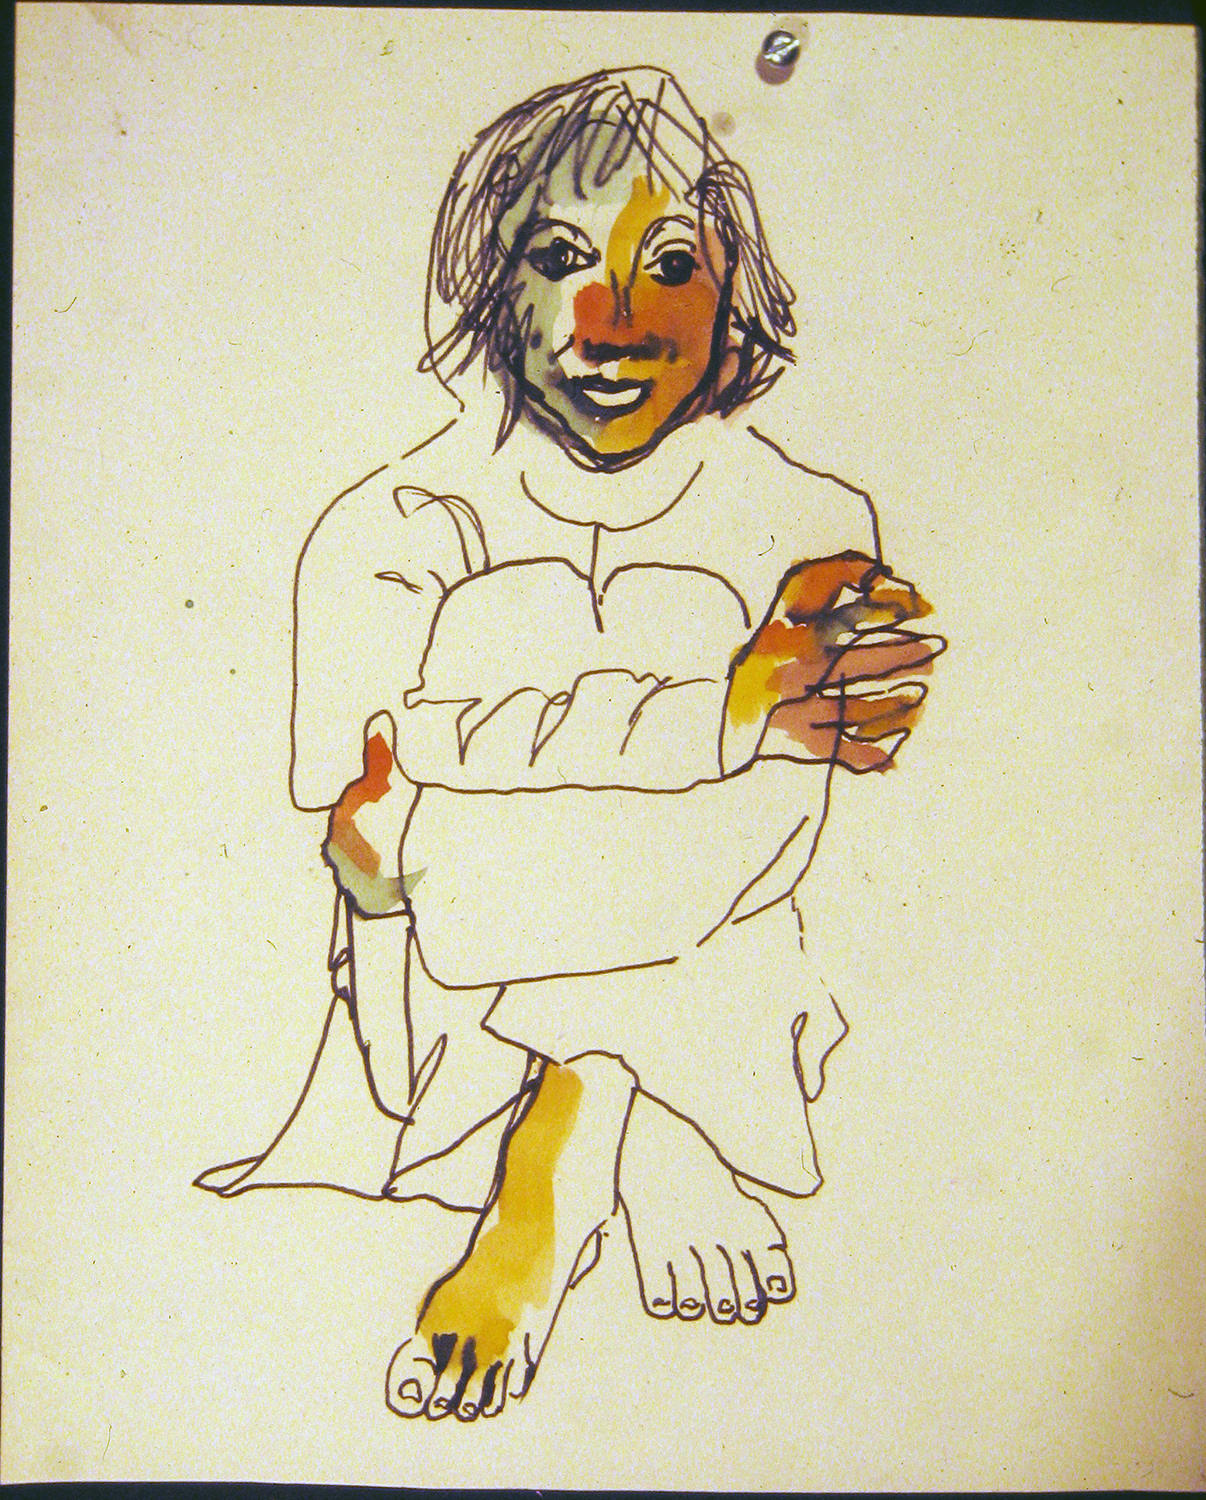 cindy benares after holy festival 1972 pencil and watercolour12x9